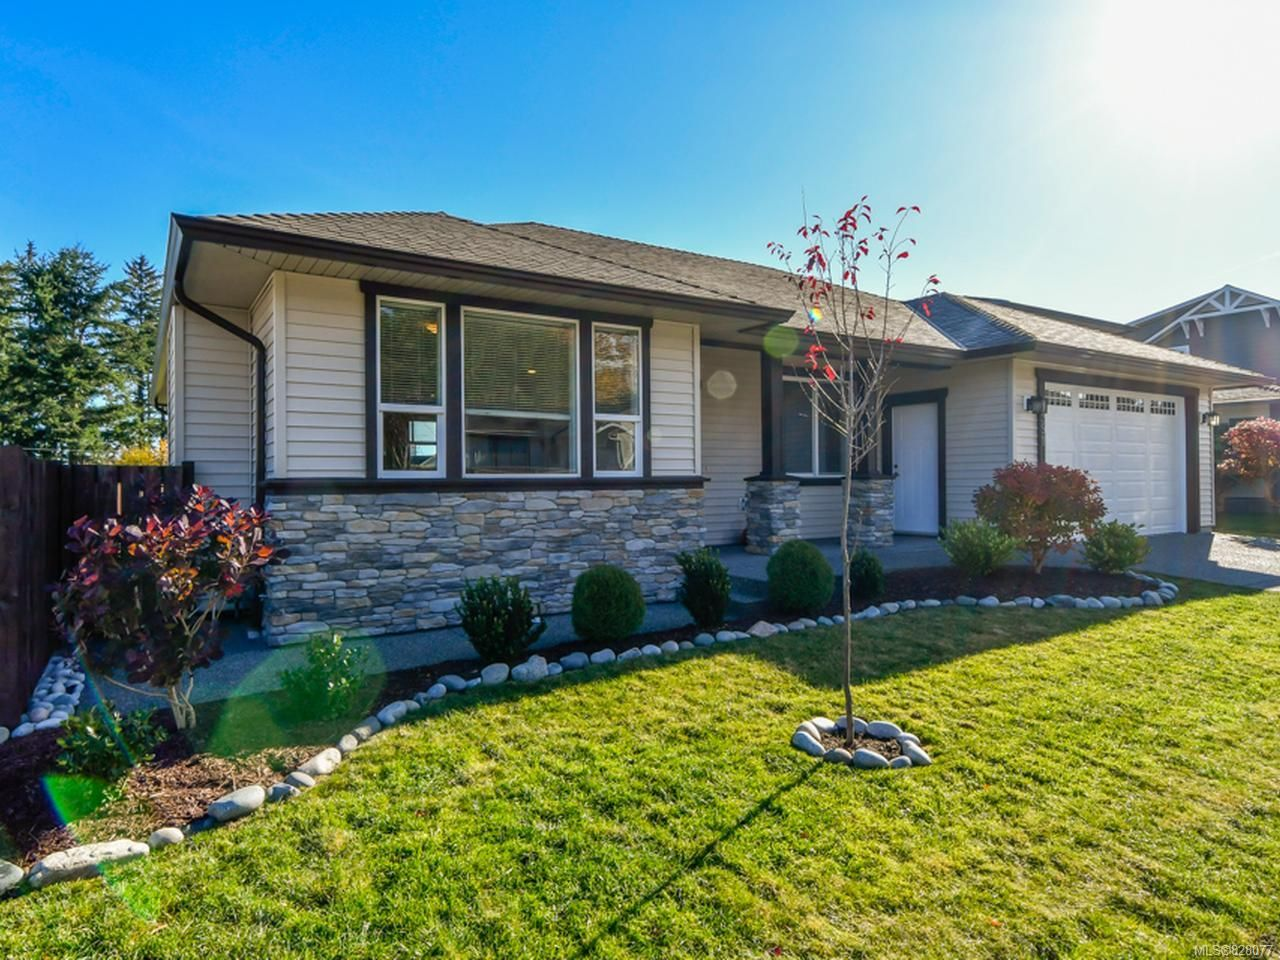 Main Photo: 4 91 DAHL ROAD in CAMPBELL RIVER: CR Willow Point House for sale (Campbell River)  : MLS®# 828077